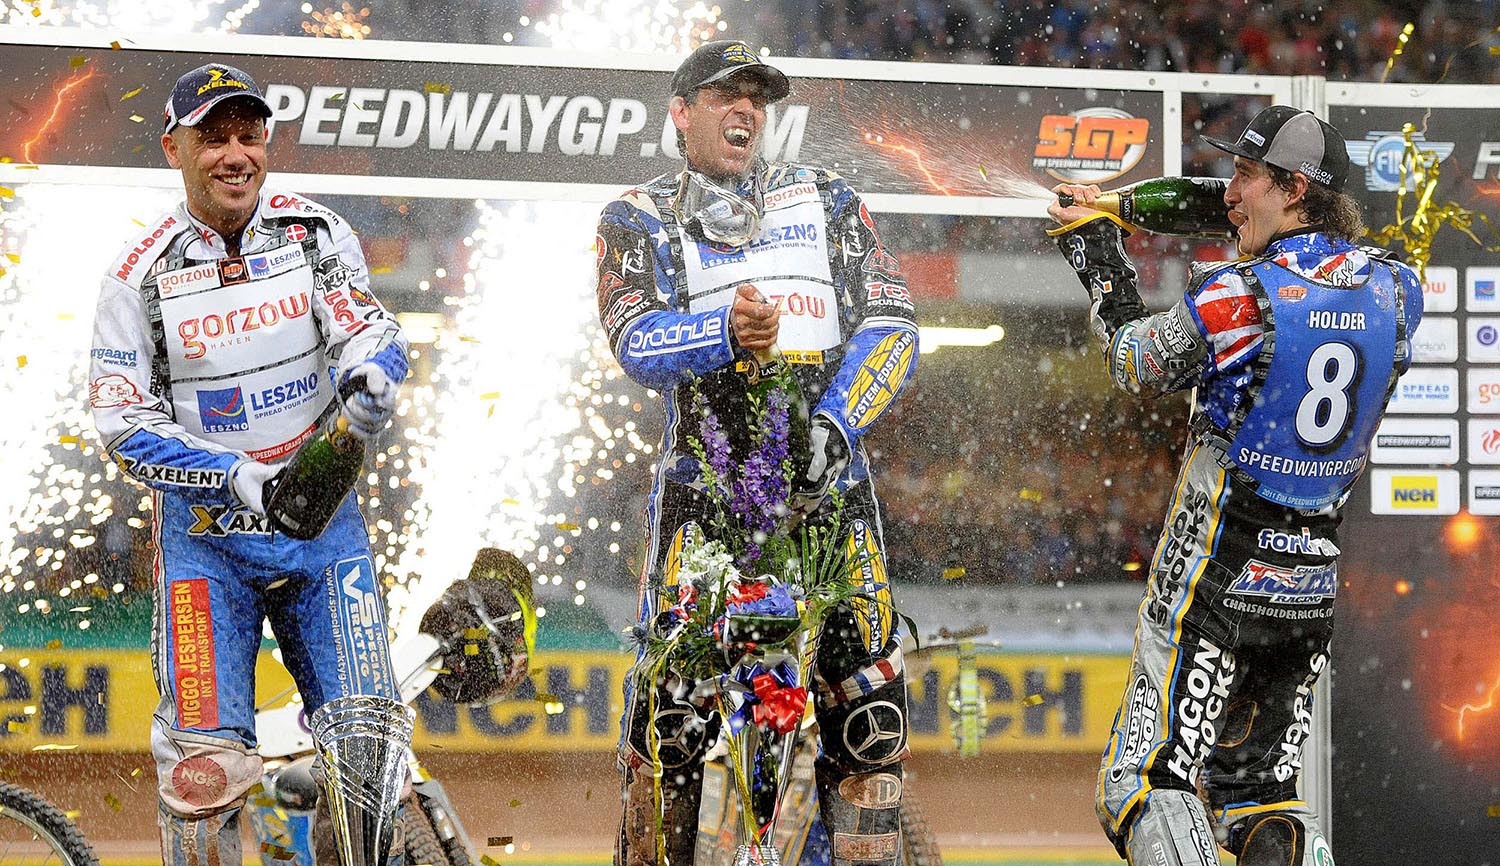 Greg Hancock celebrates winning the 2011 British Speedway Grand Prix